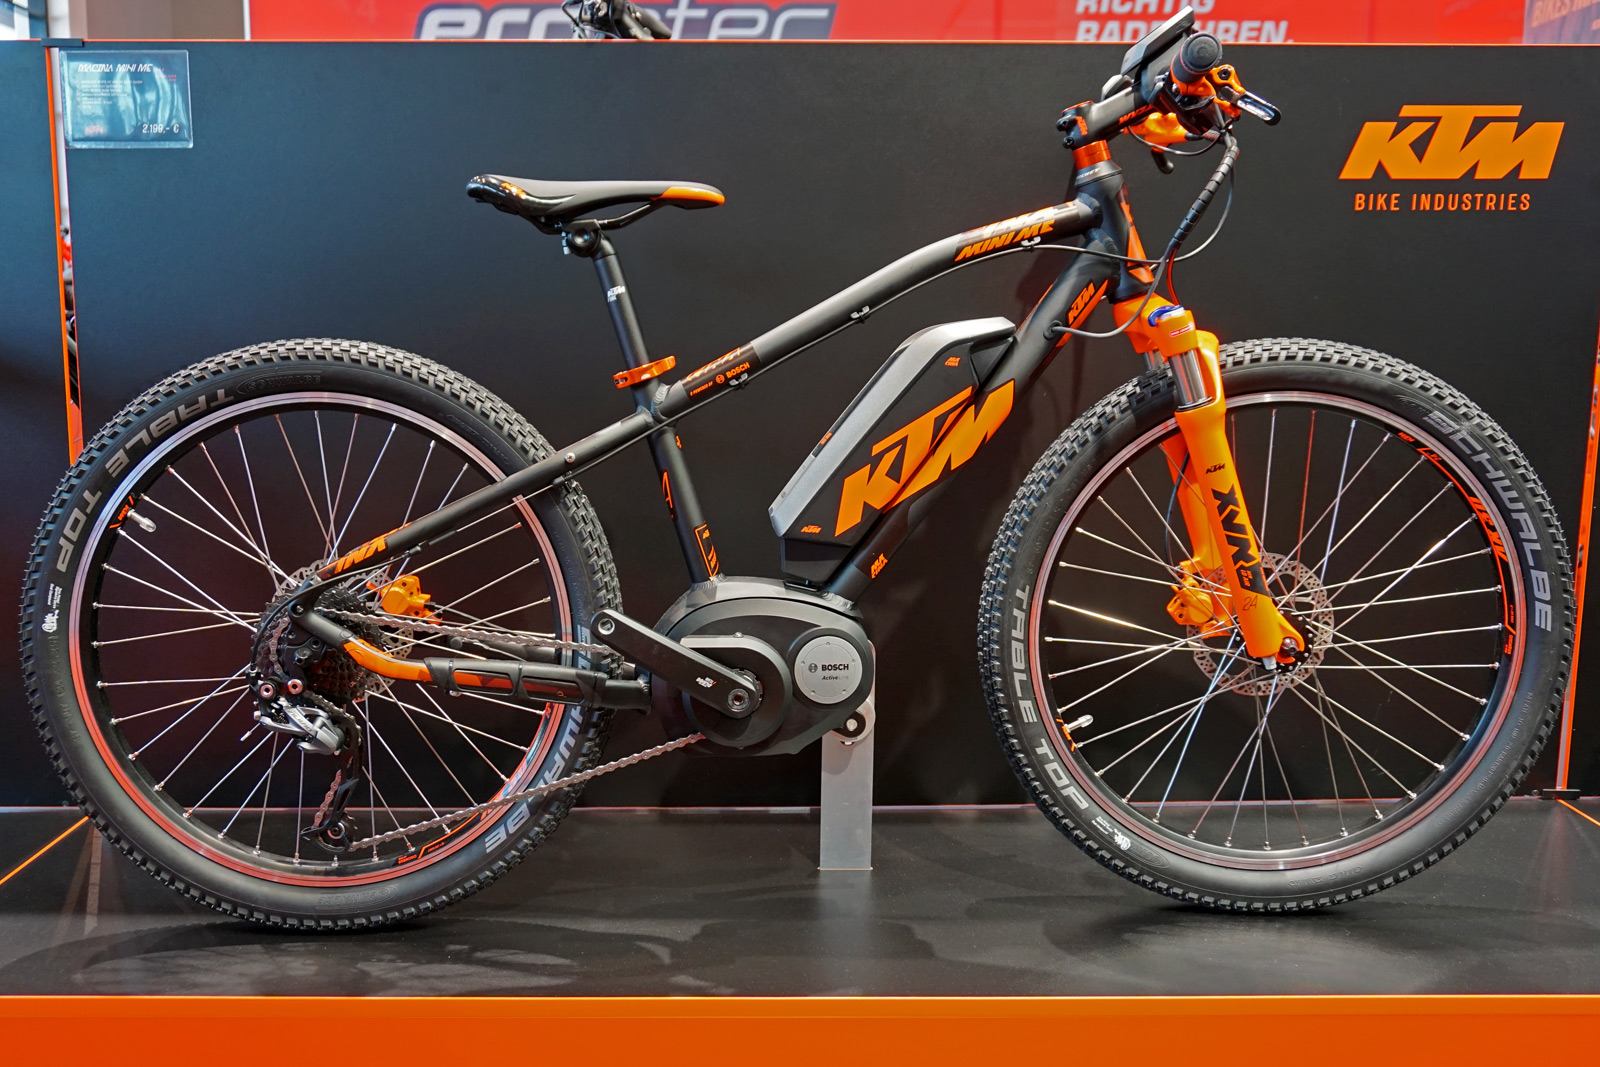 eb15 ktm updates mountain bikes with straight line link. Black Bedroom Furniture Sets. Home Design Ideas